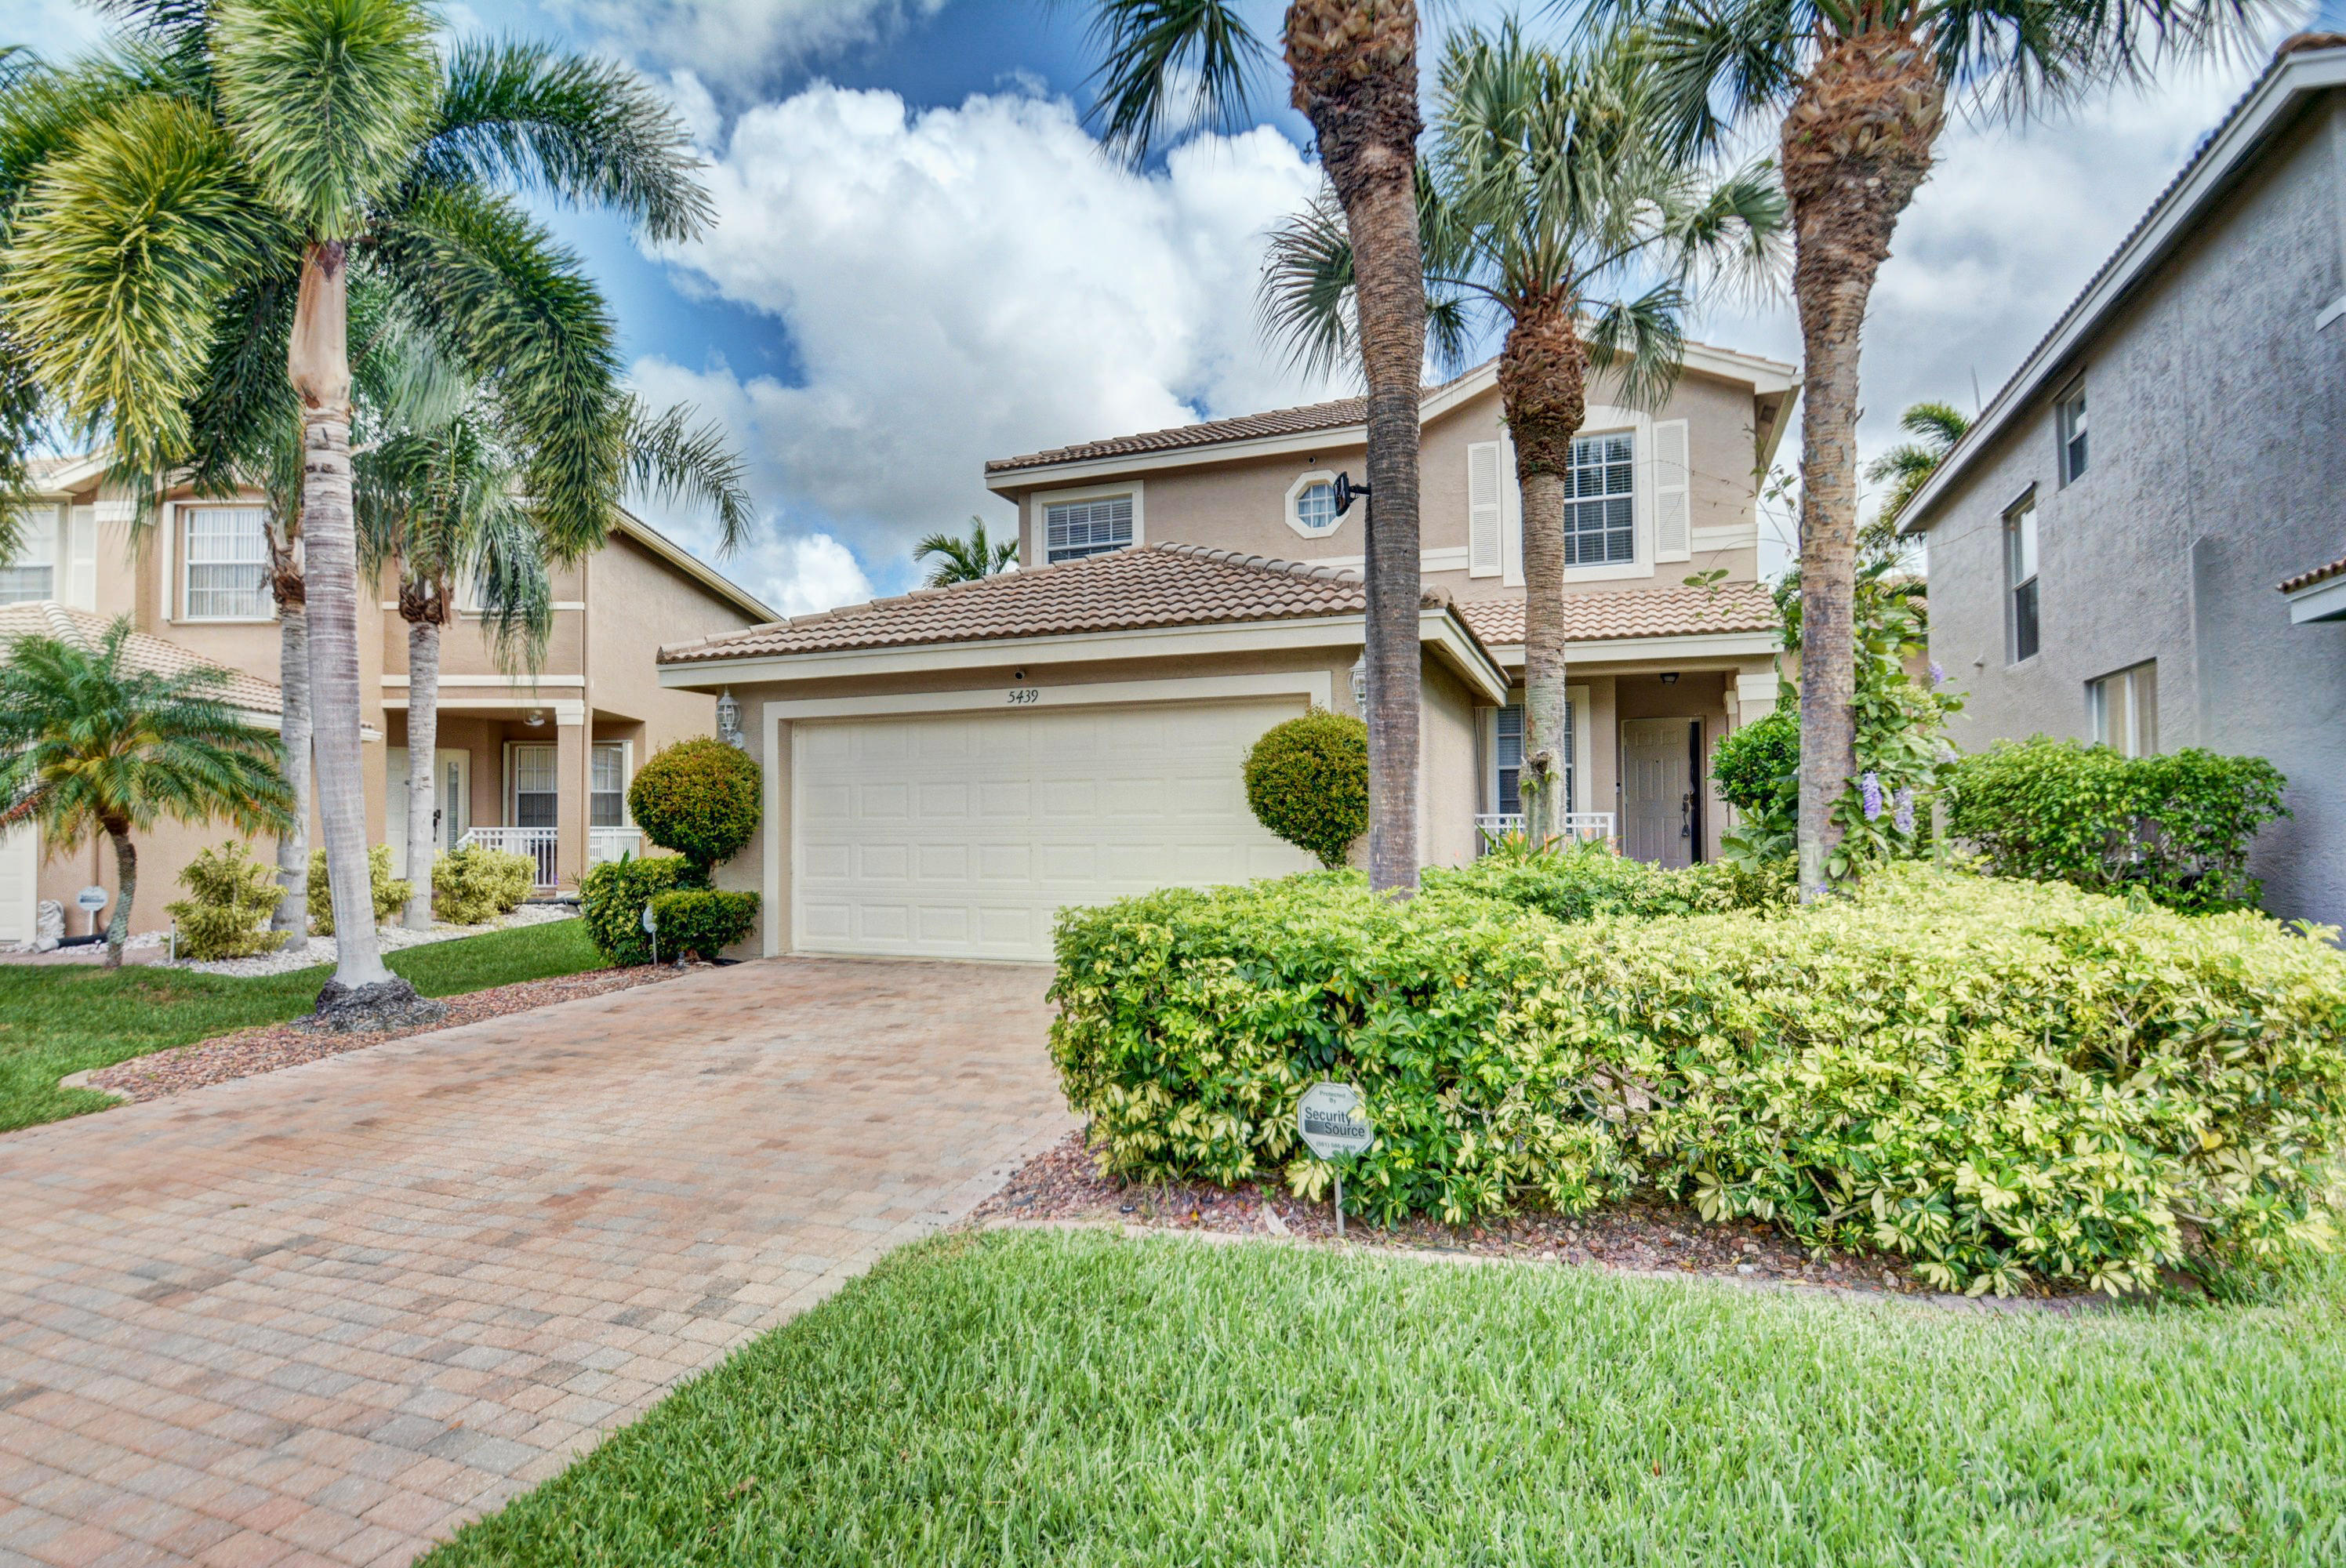 Home for sale in NAUTICA ISLES WEST PLAT 2 Greenacres Florida